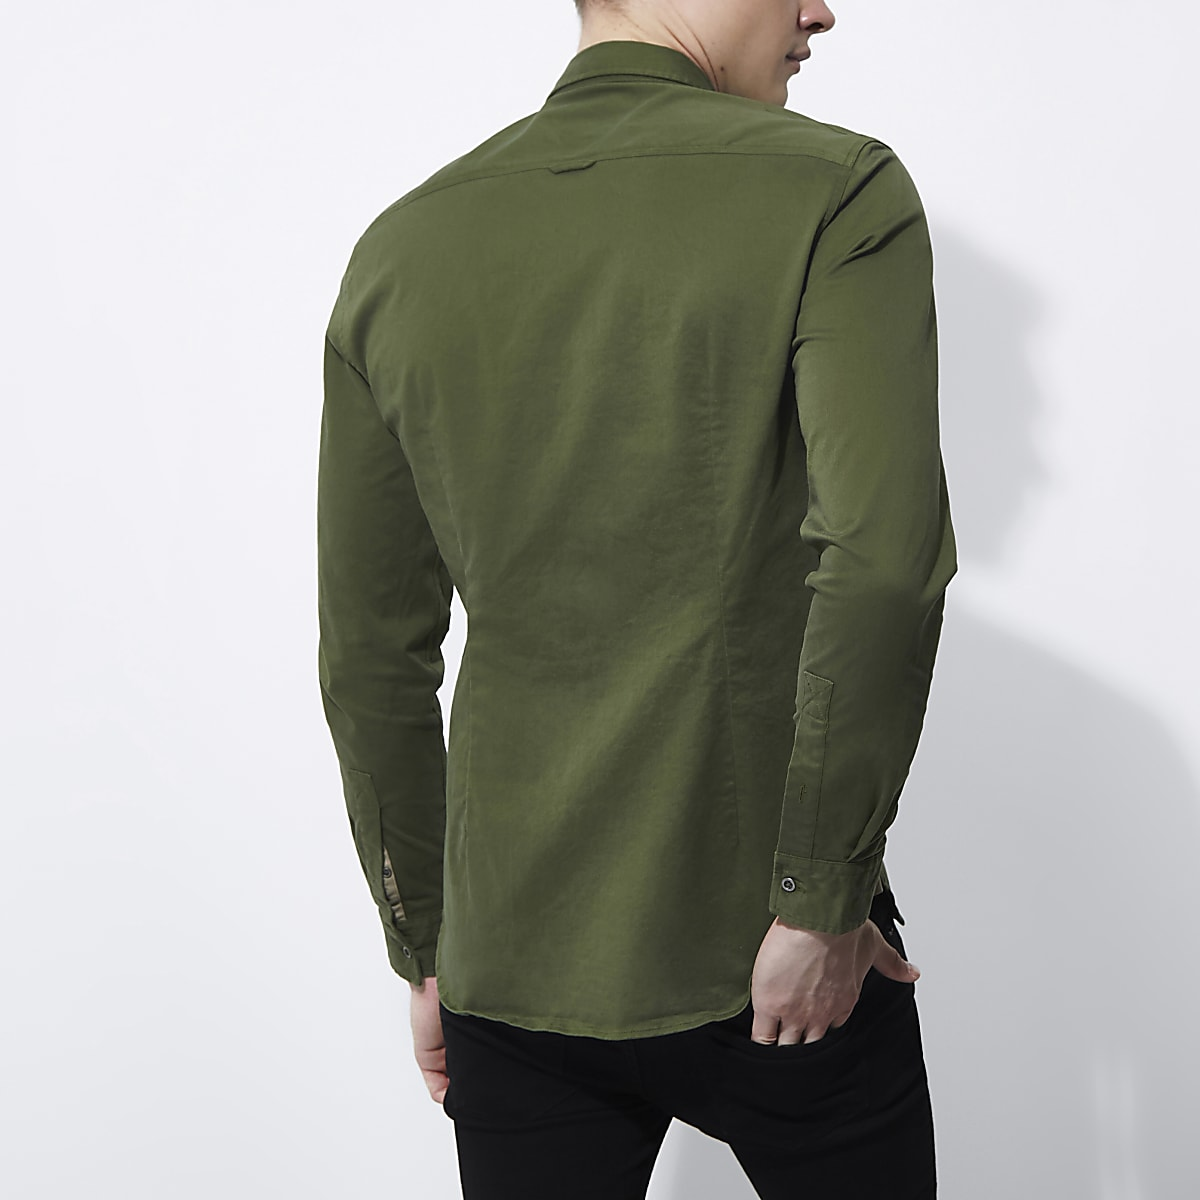 6cc2dc792 Khaki green muscle fit military shirt - Long Sleeve Shirts - Shirts - men